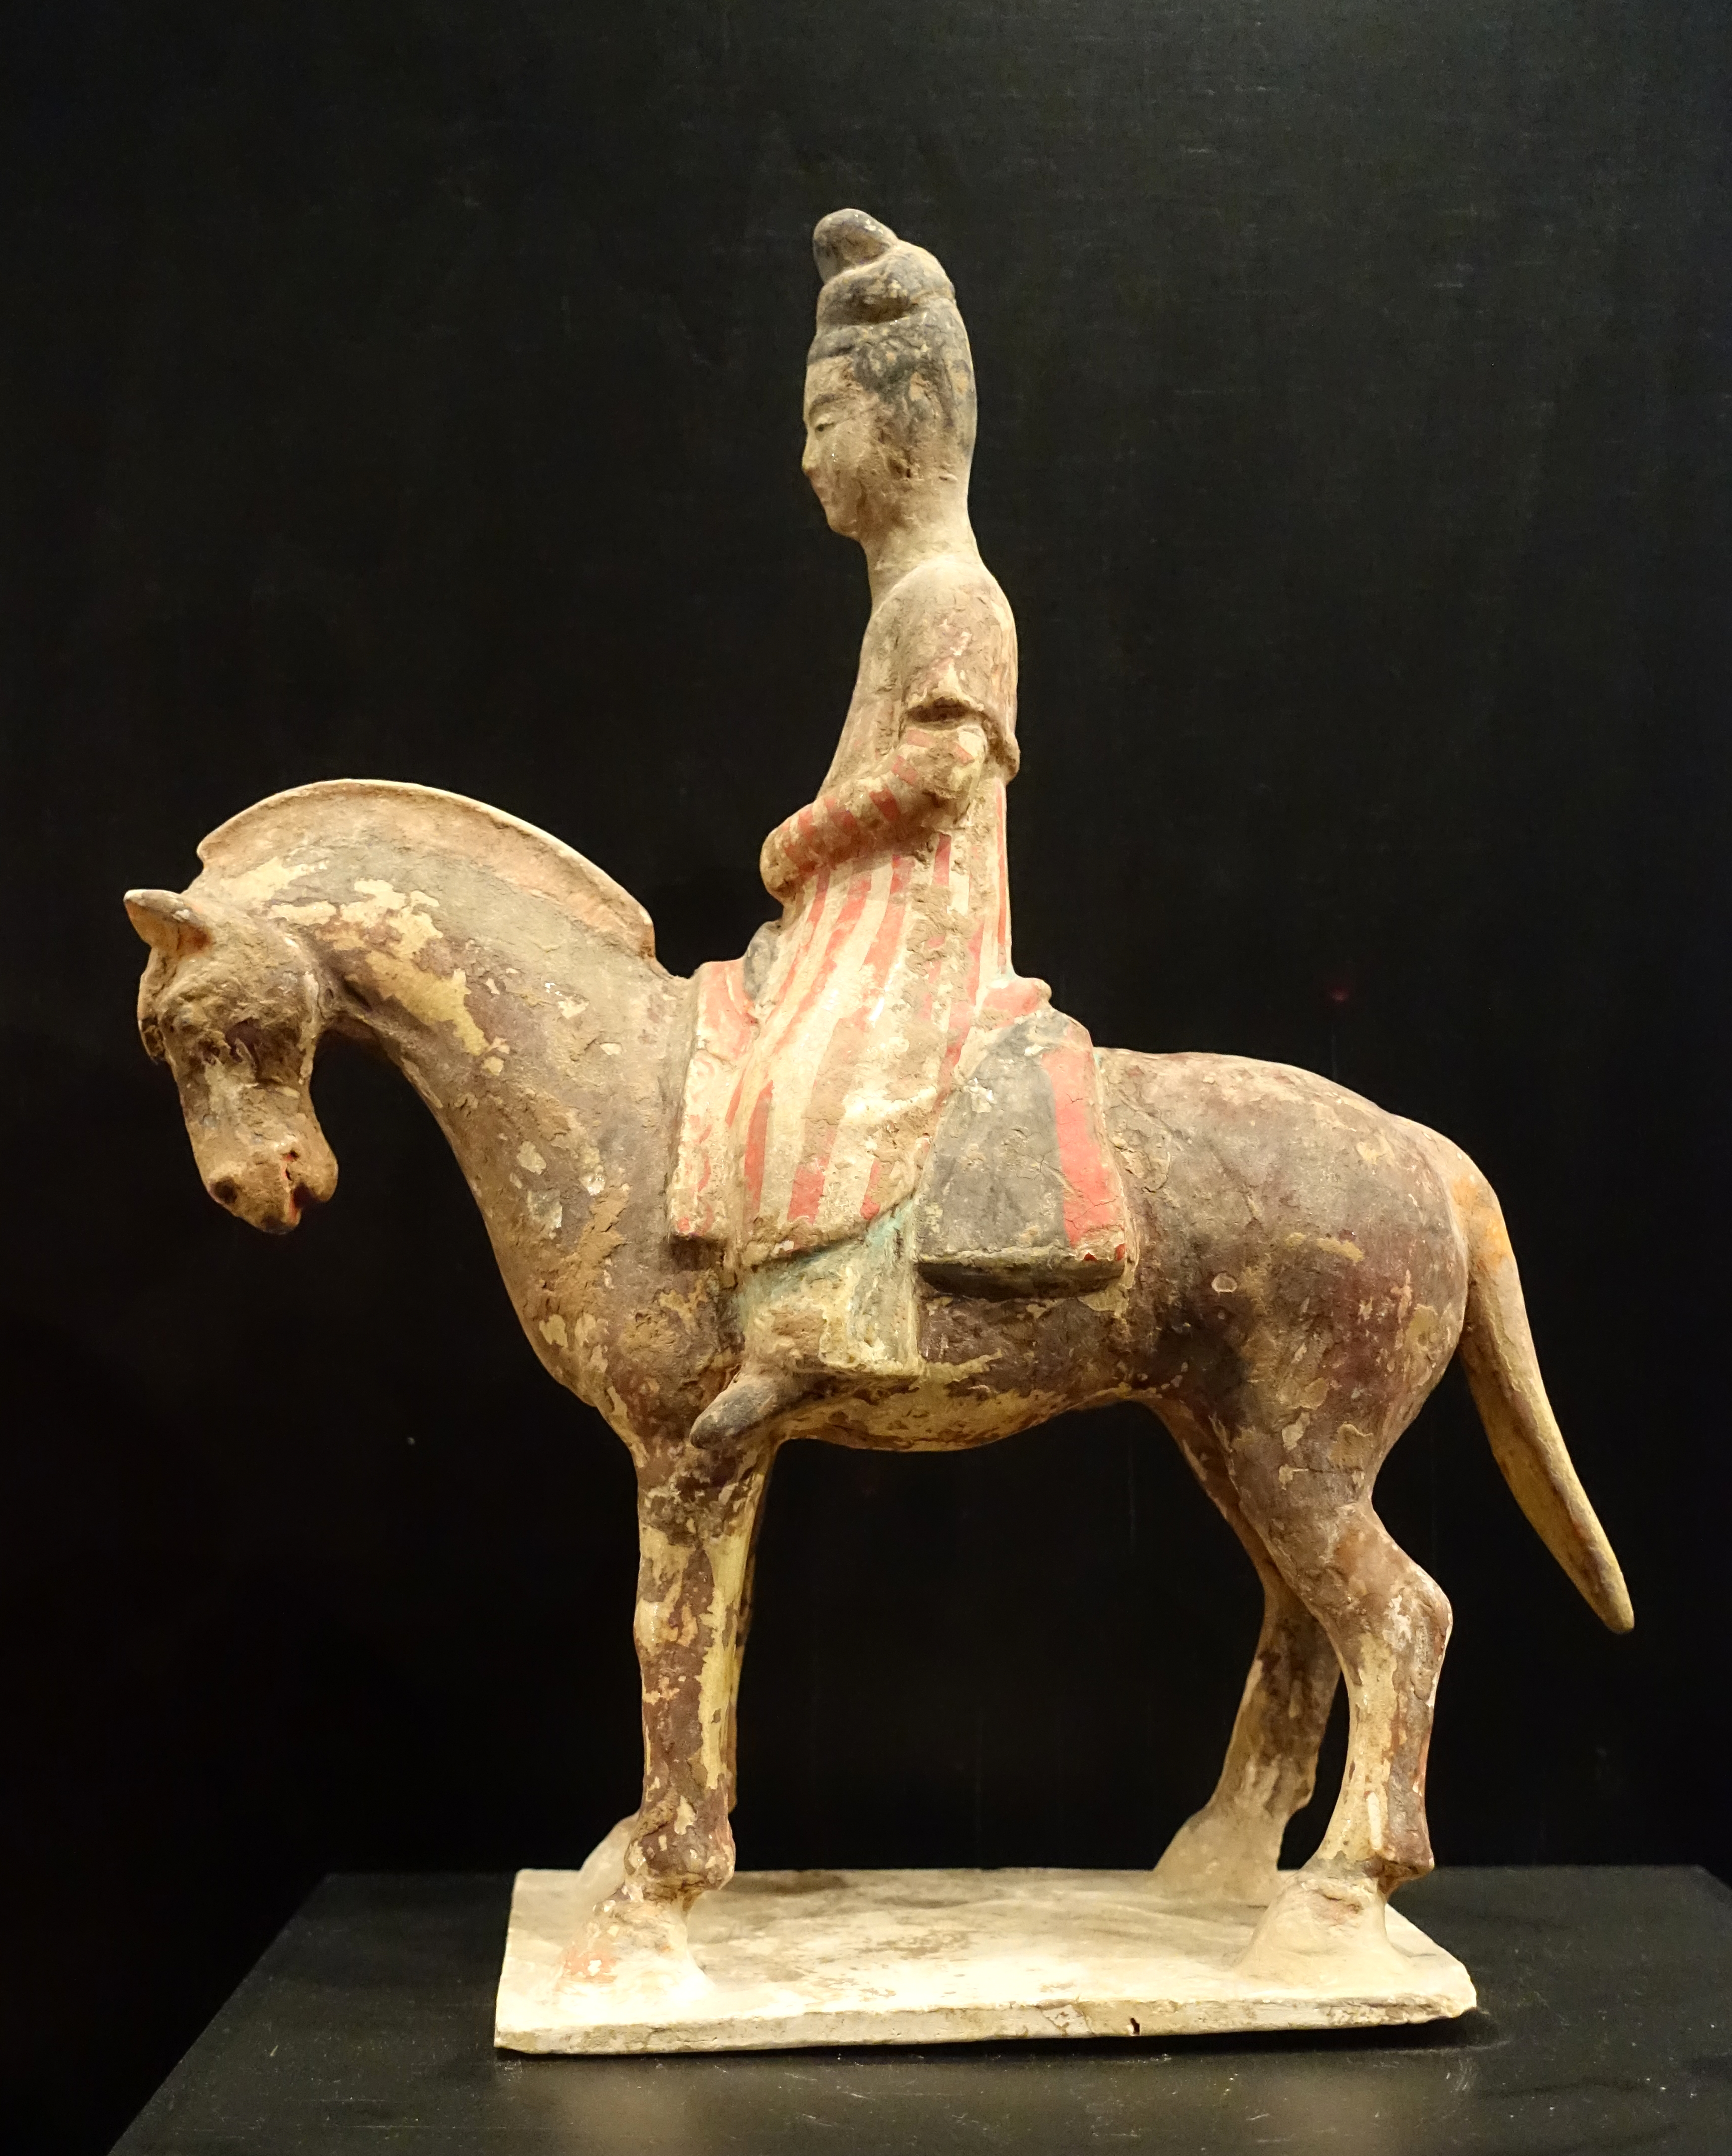 filetomb figurine of a woman riding a horse dressed in